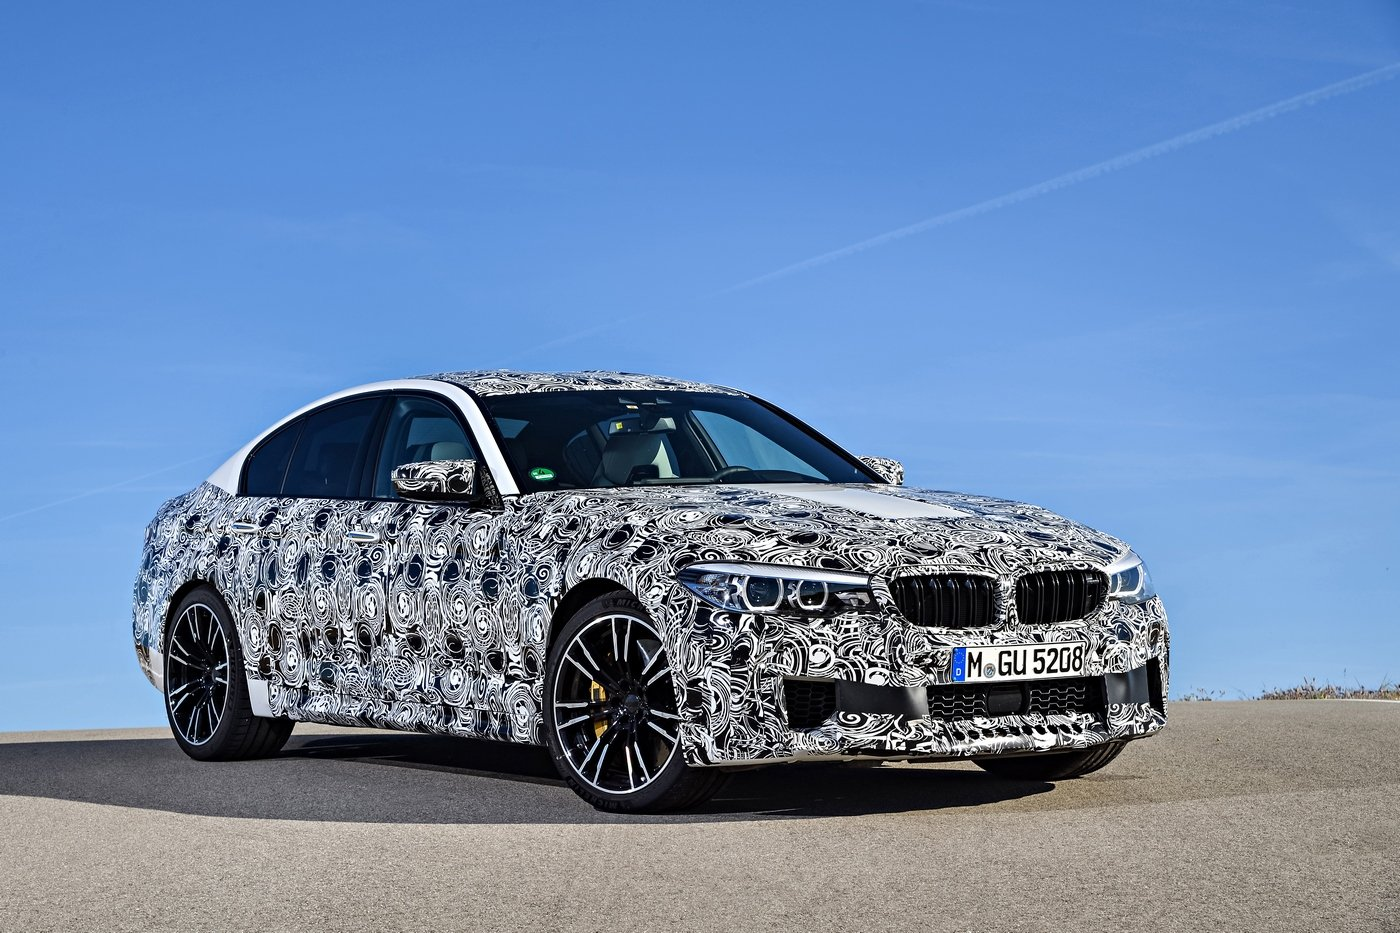 2018 BMW M5 to arrive with M xDrive and 600hp on tap